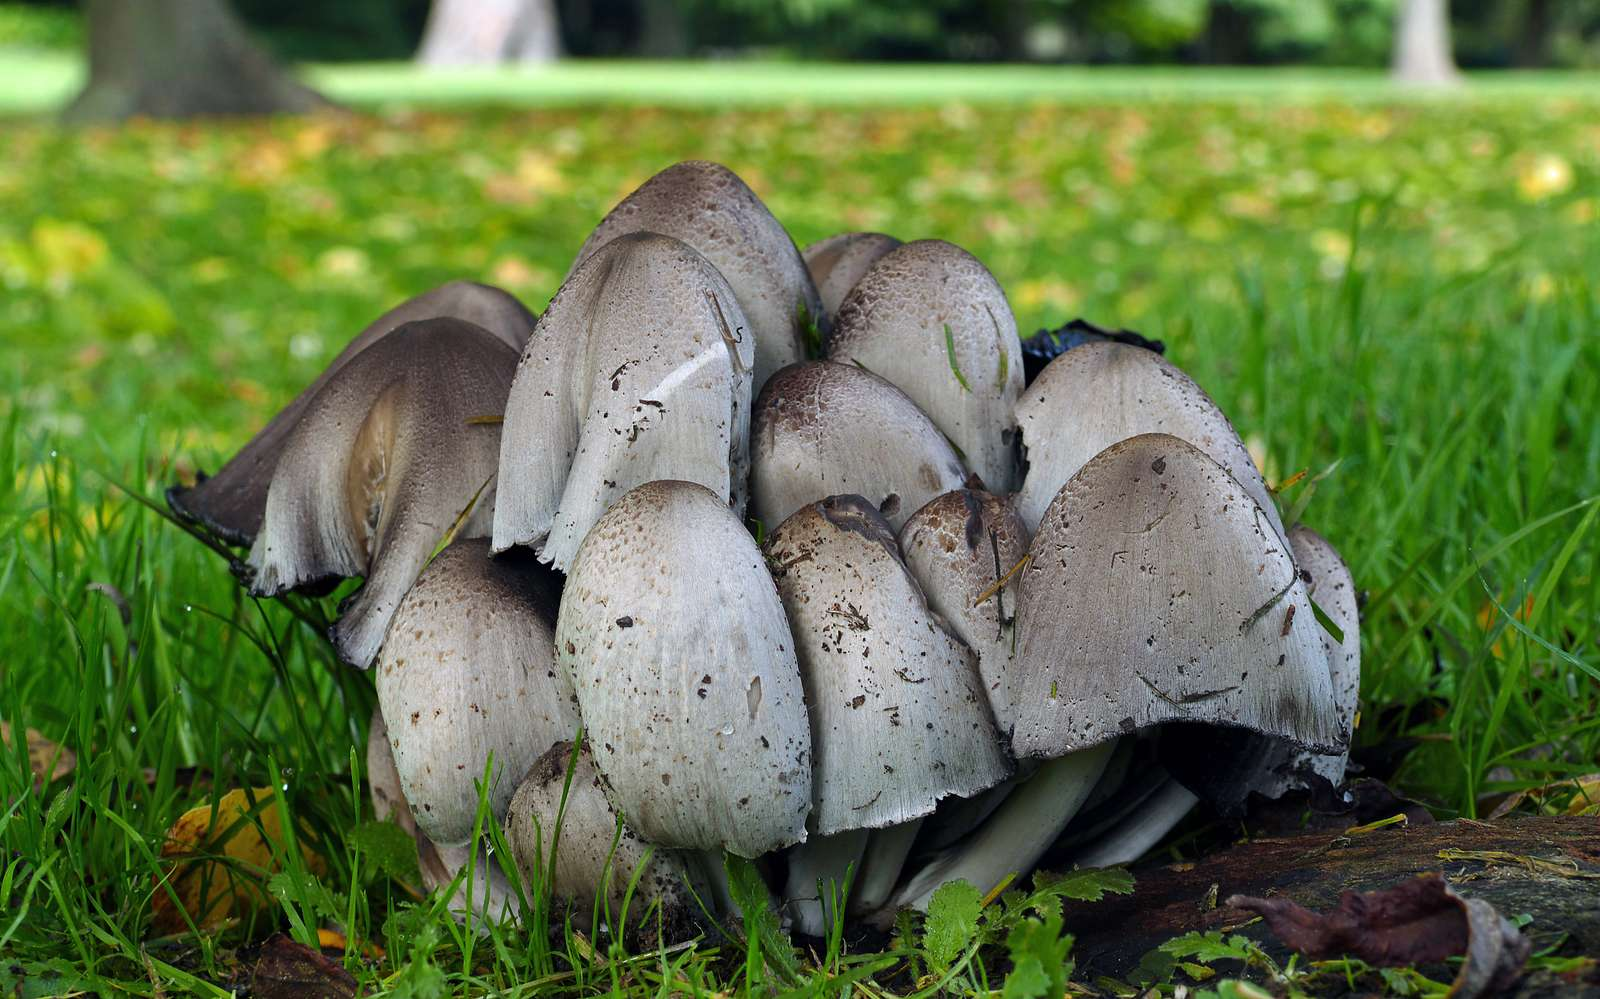 Smooth Ink Cap (Coprinus atramentarius)